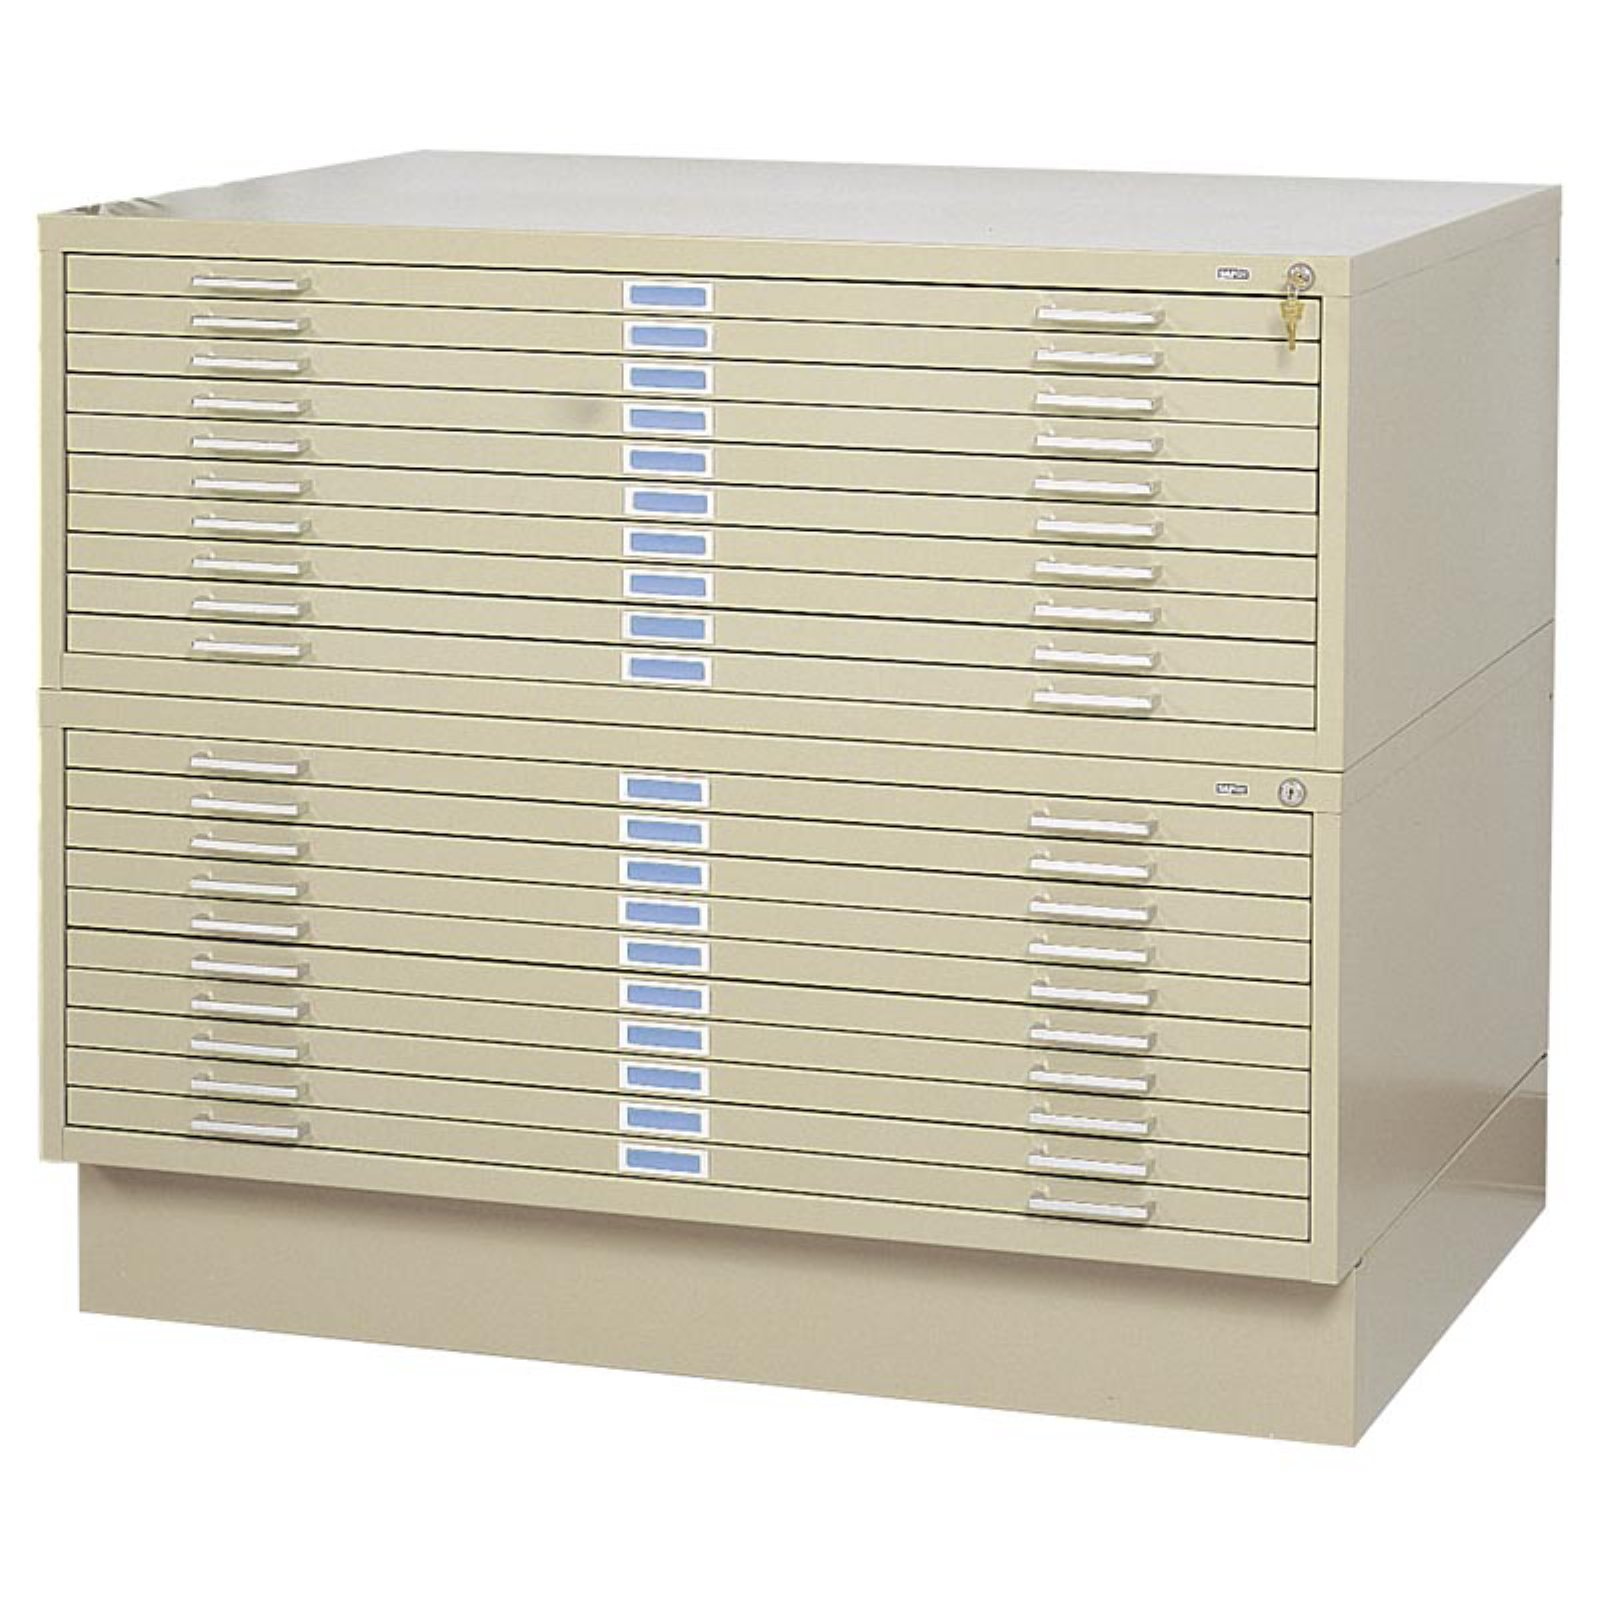 Safco 5 Drawer Steel Flat Files